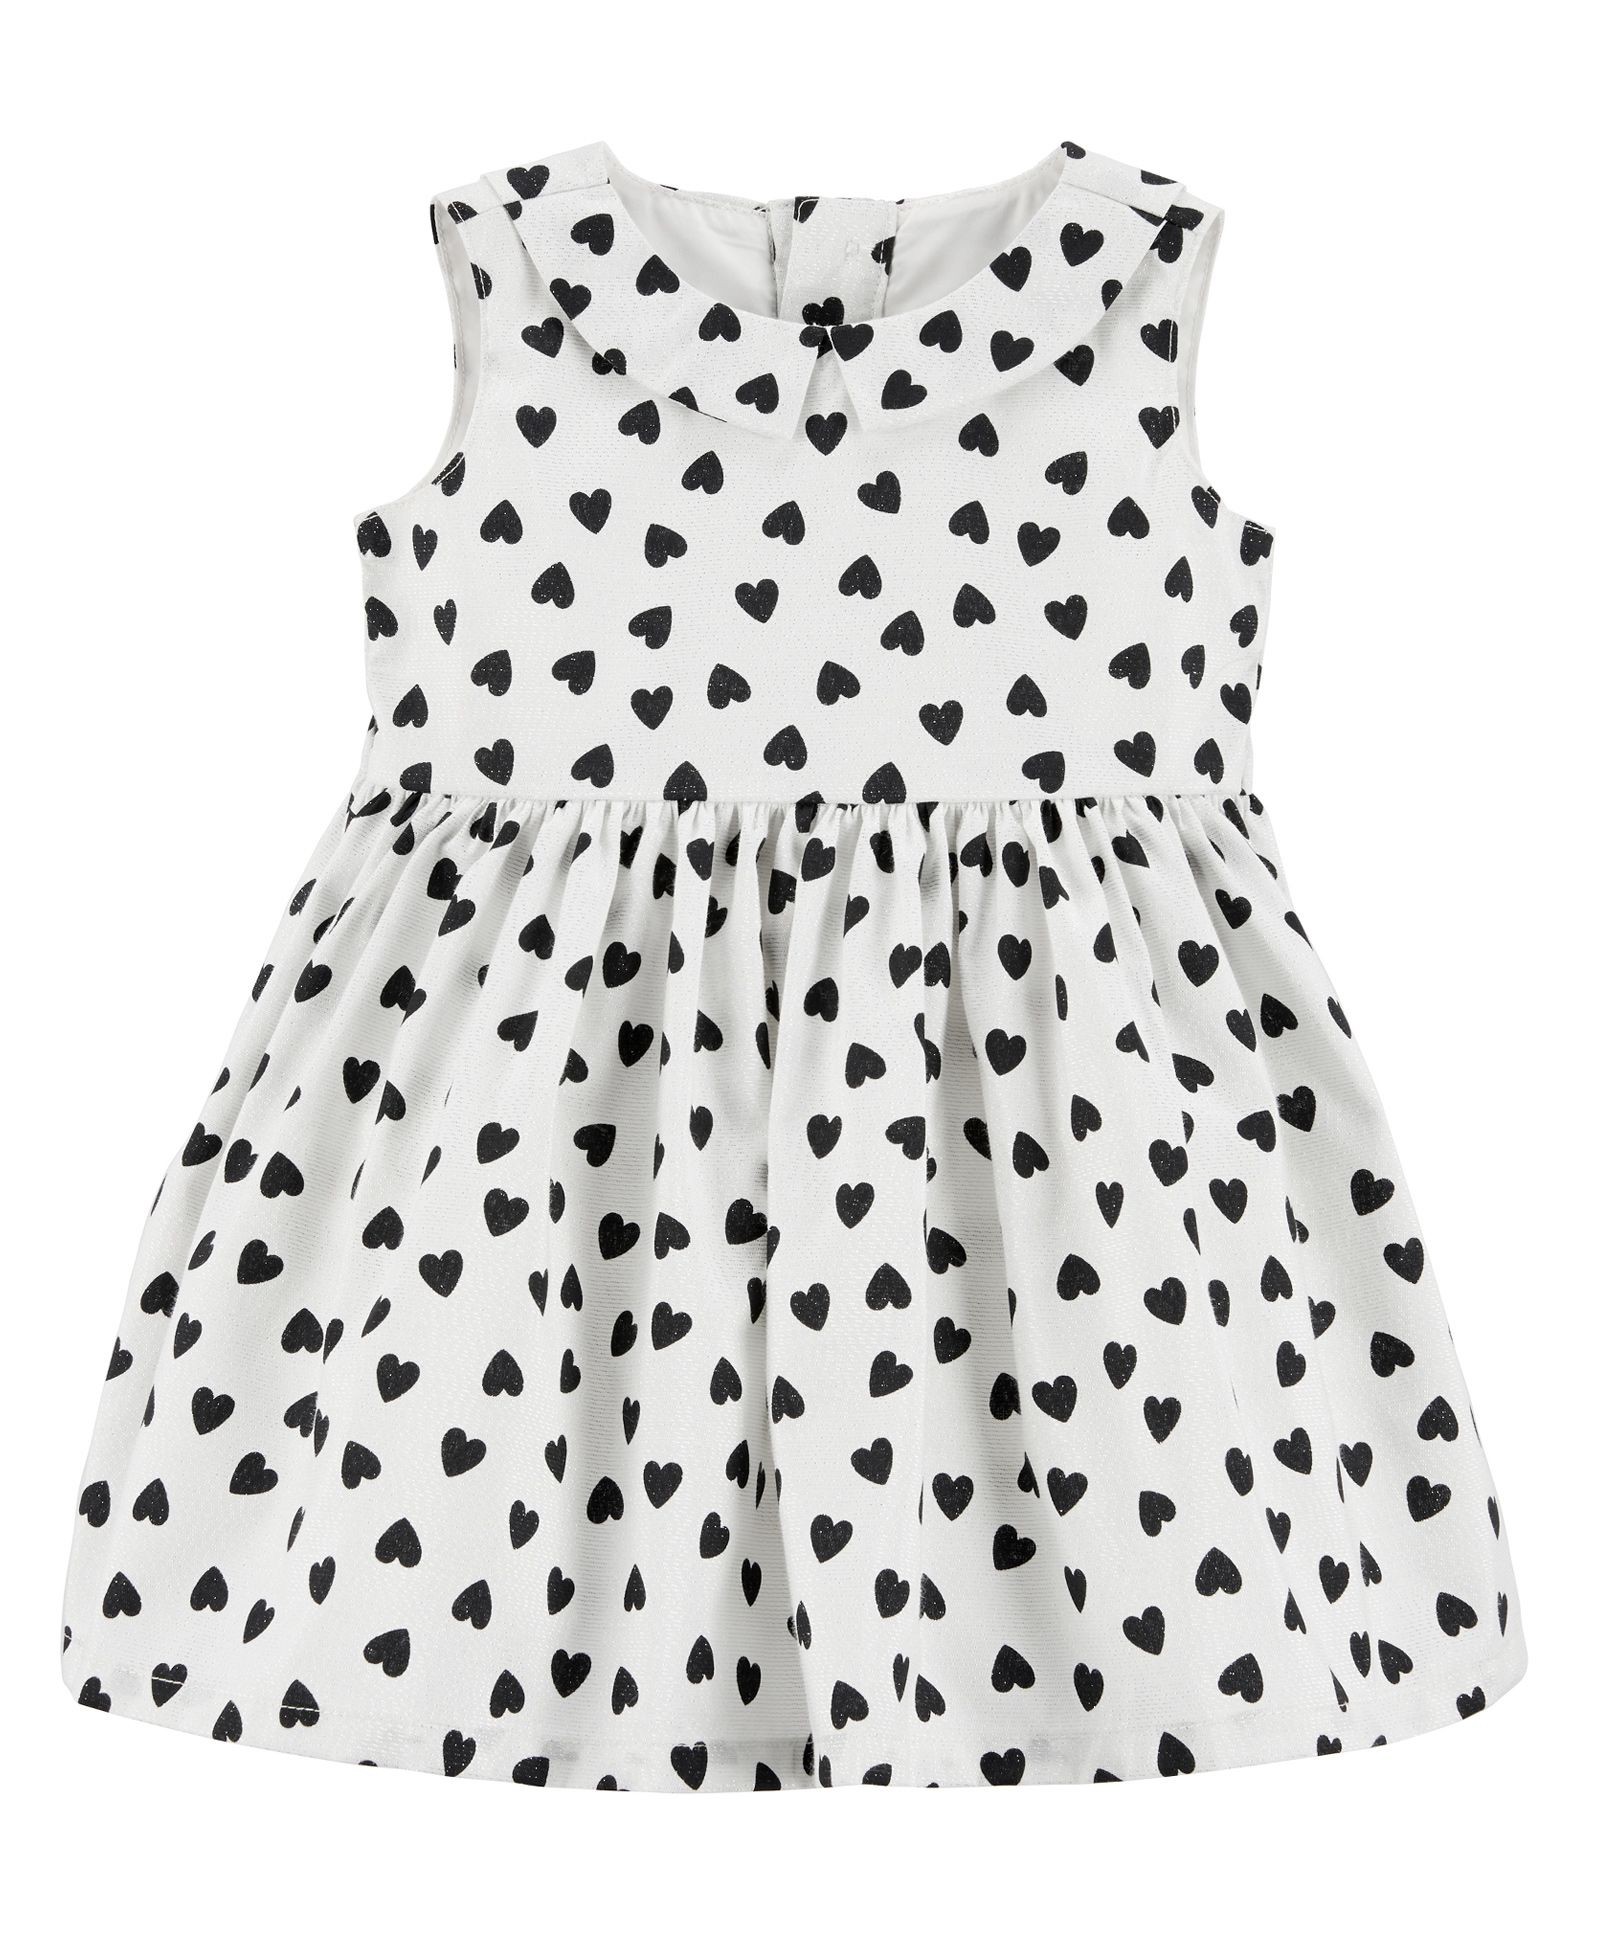 4ad8a0c83807 Buy Carters Heart Bow Holiday Dress White Black for Girls (12-18 ...